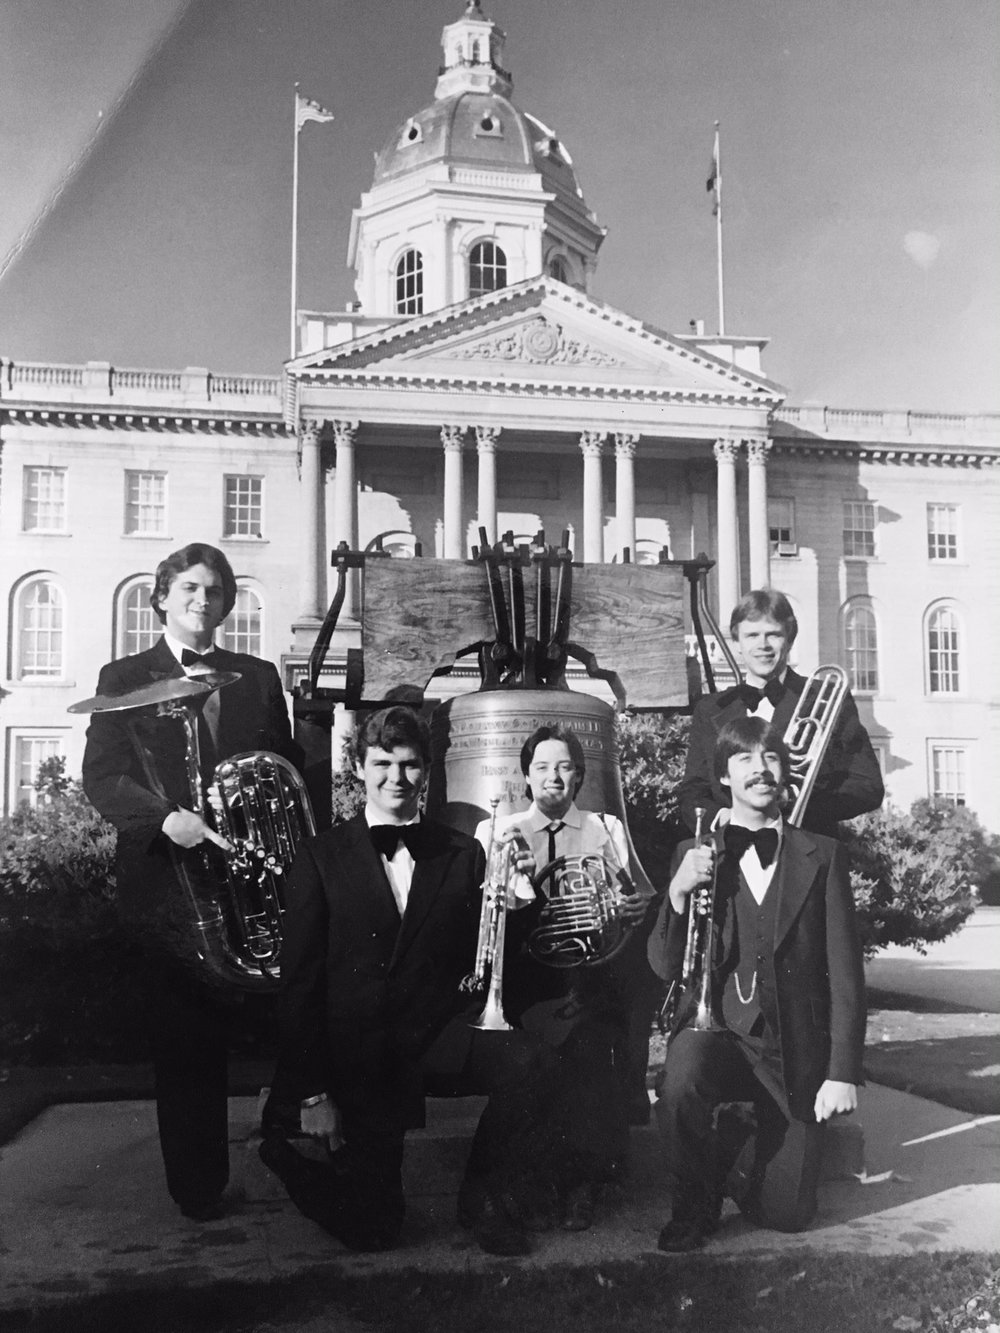 The Concord Brass Quintet circa 1981